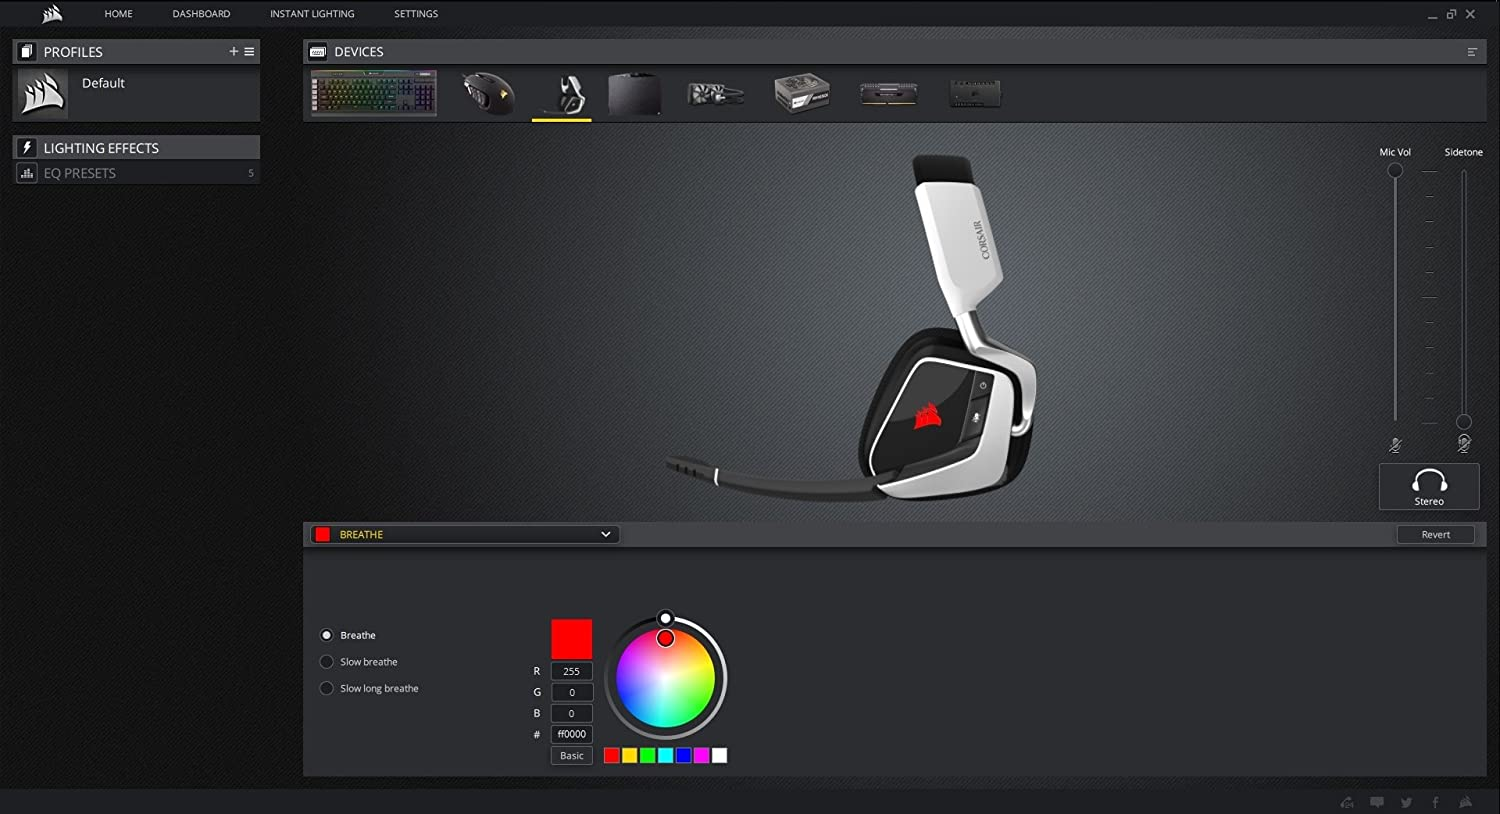 how to get discord to recognise headset